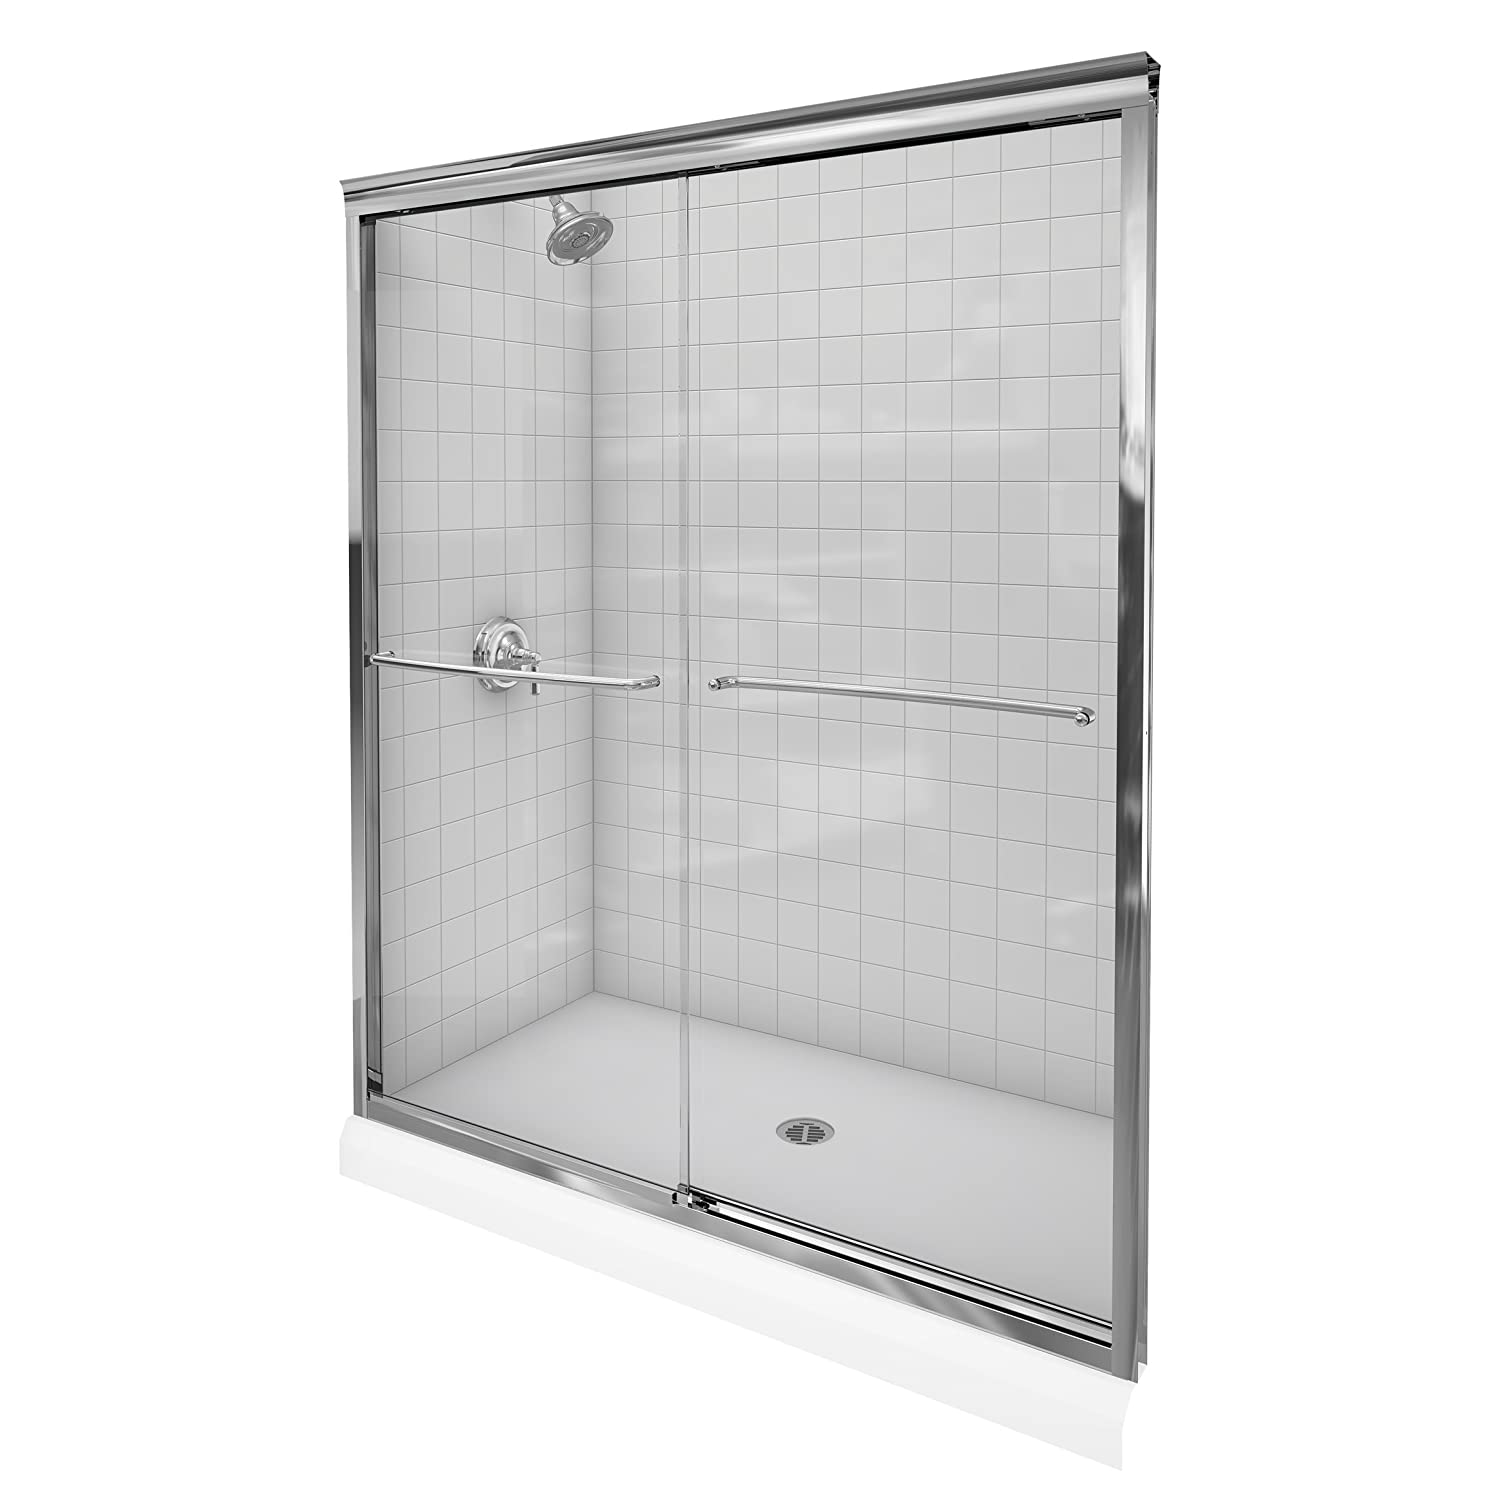 Kohler k 702207 l shp fluence 38 inch thick glass bypass shower kohler k 702207 l shp fluence 38 inch thick glass bypass shower door bright polished silver amazon vtopaller Gallery